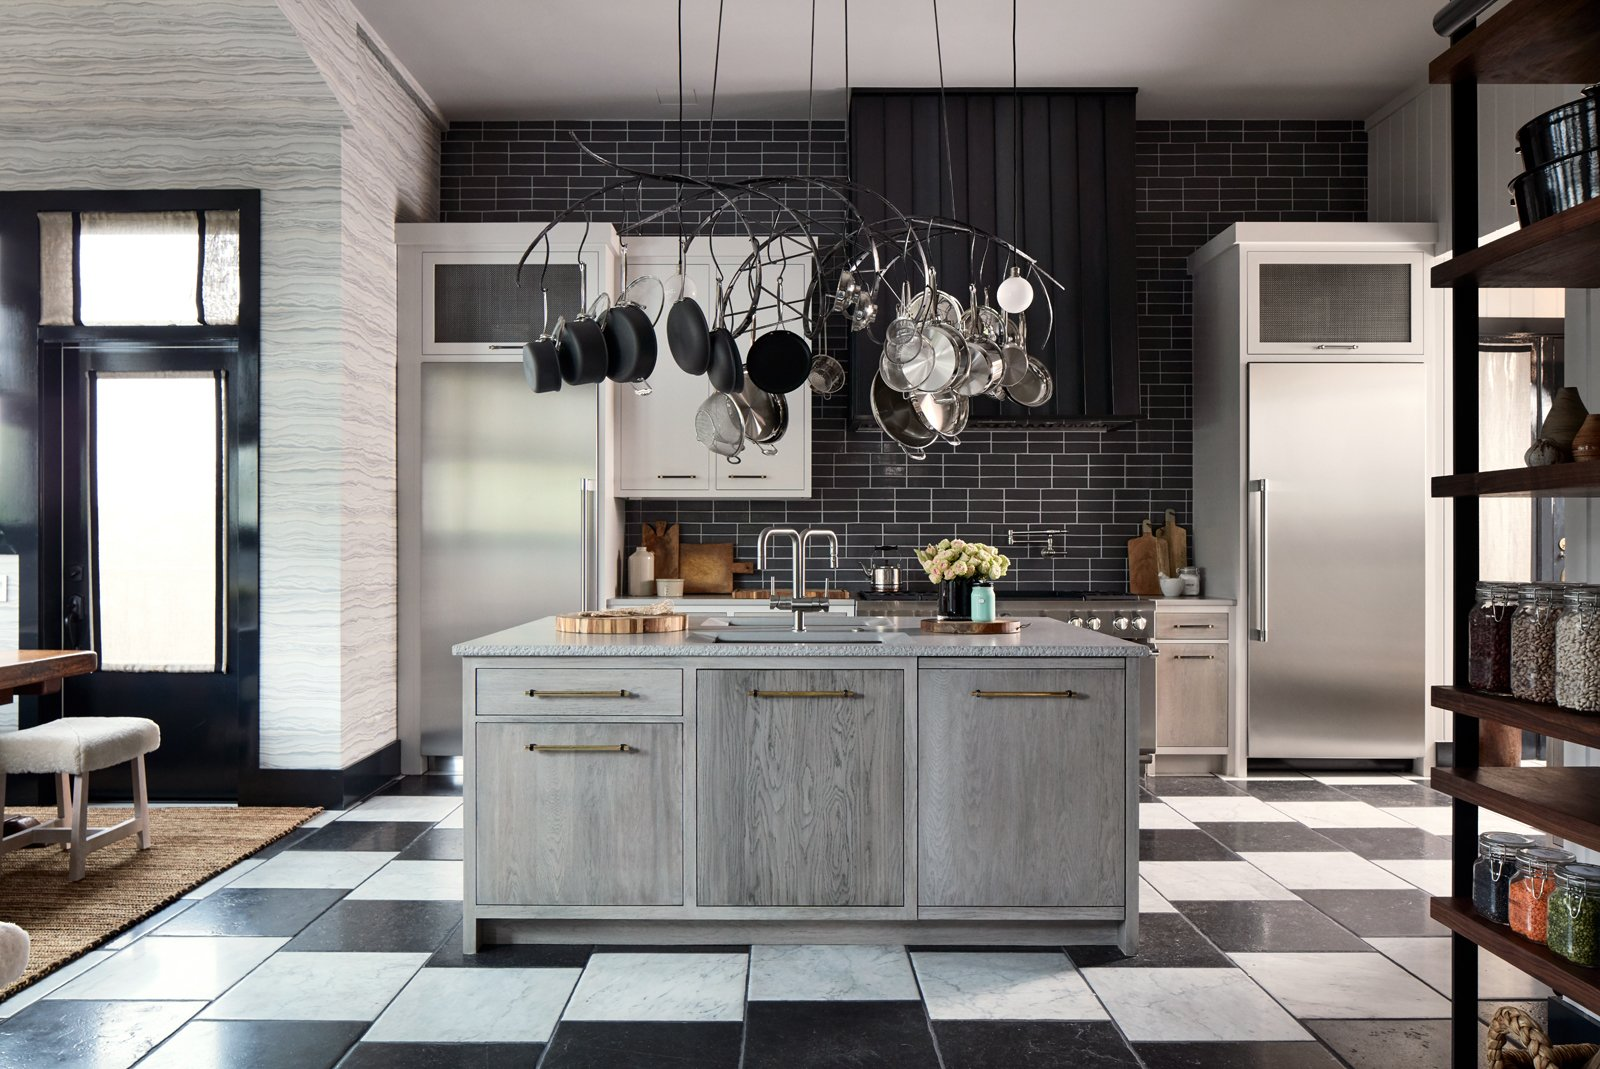 House Beautiful's Kitchen of the Year,